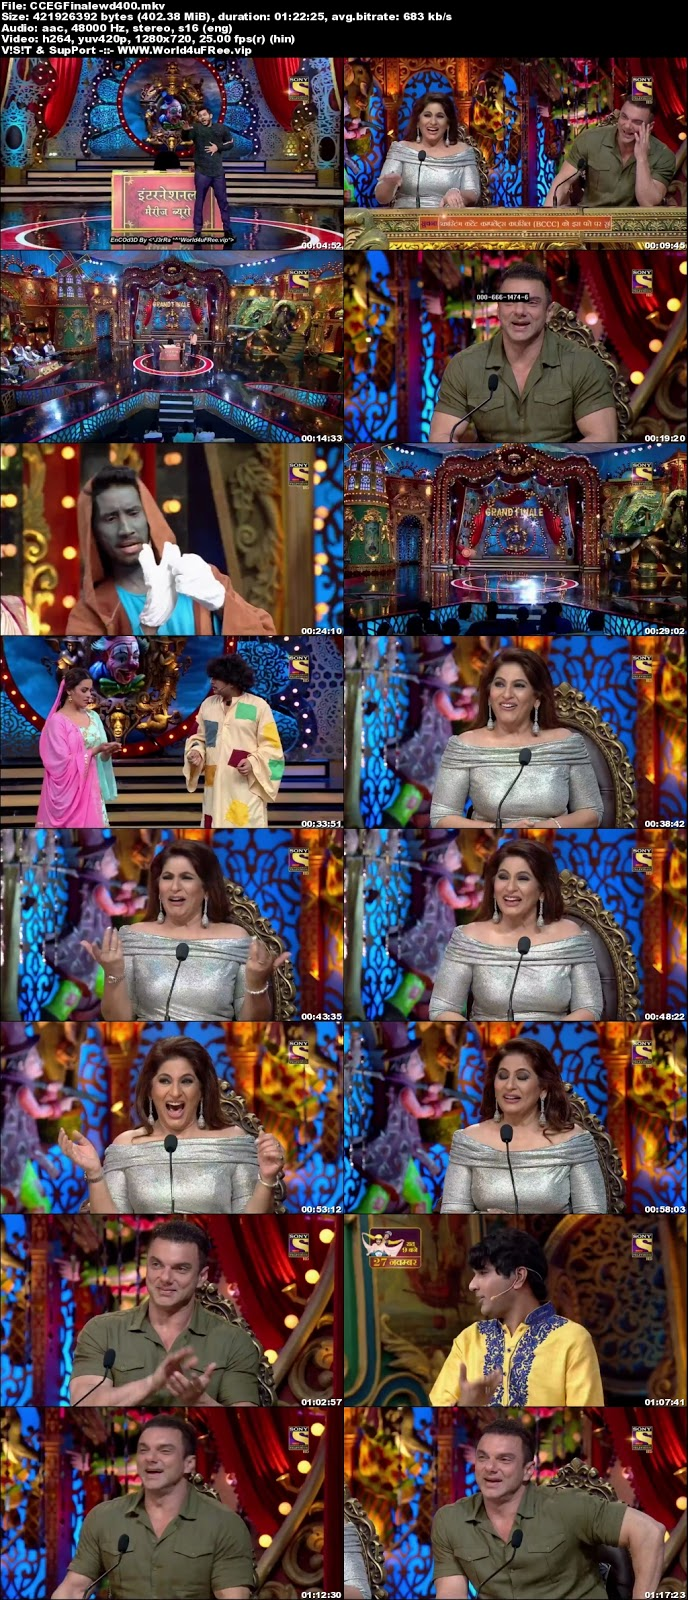 Comedy Circus 2018 Grand Finale 720p WEBRip 400mb x264 world4ufree.fun tv show Comedy Circus 2018 hindi tv show Comedy Circus 2018  Season 1 sony tv show compressed small size free download or watch online at world4ufree.fun